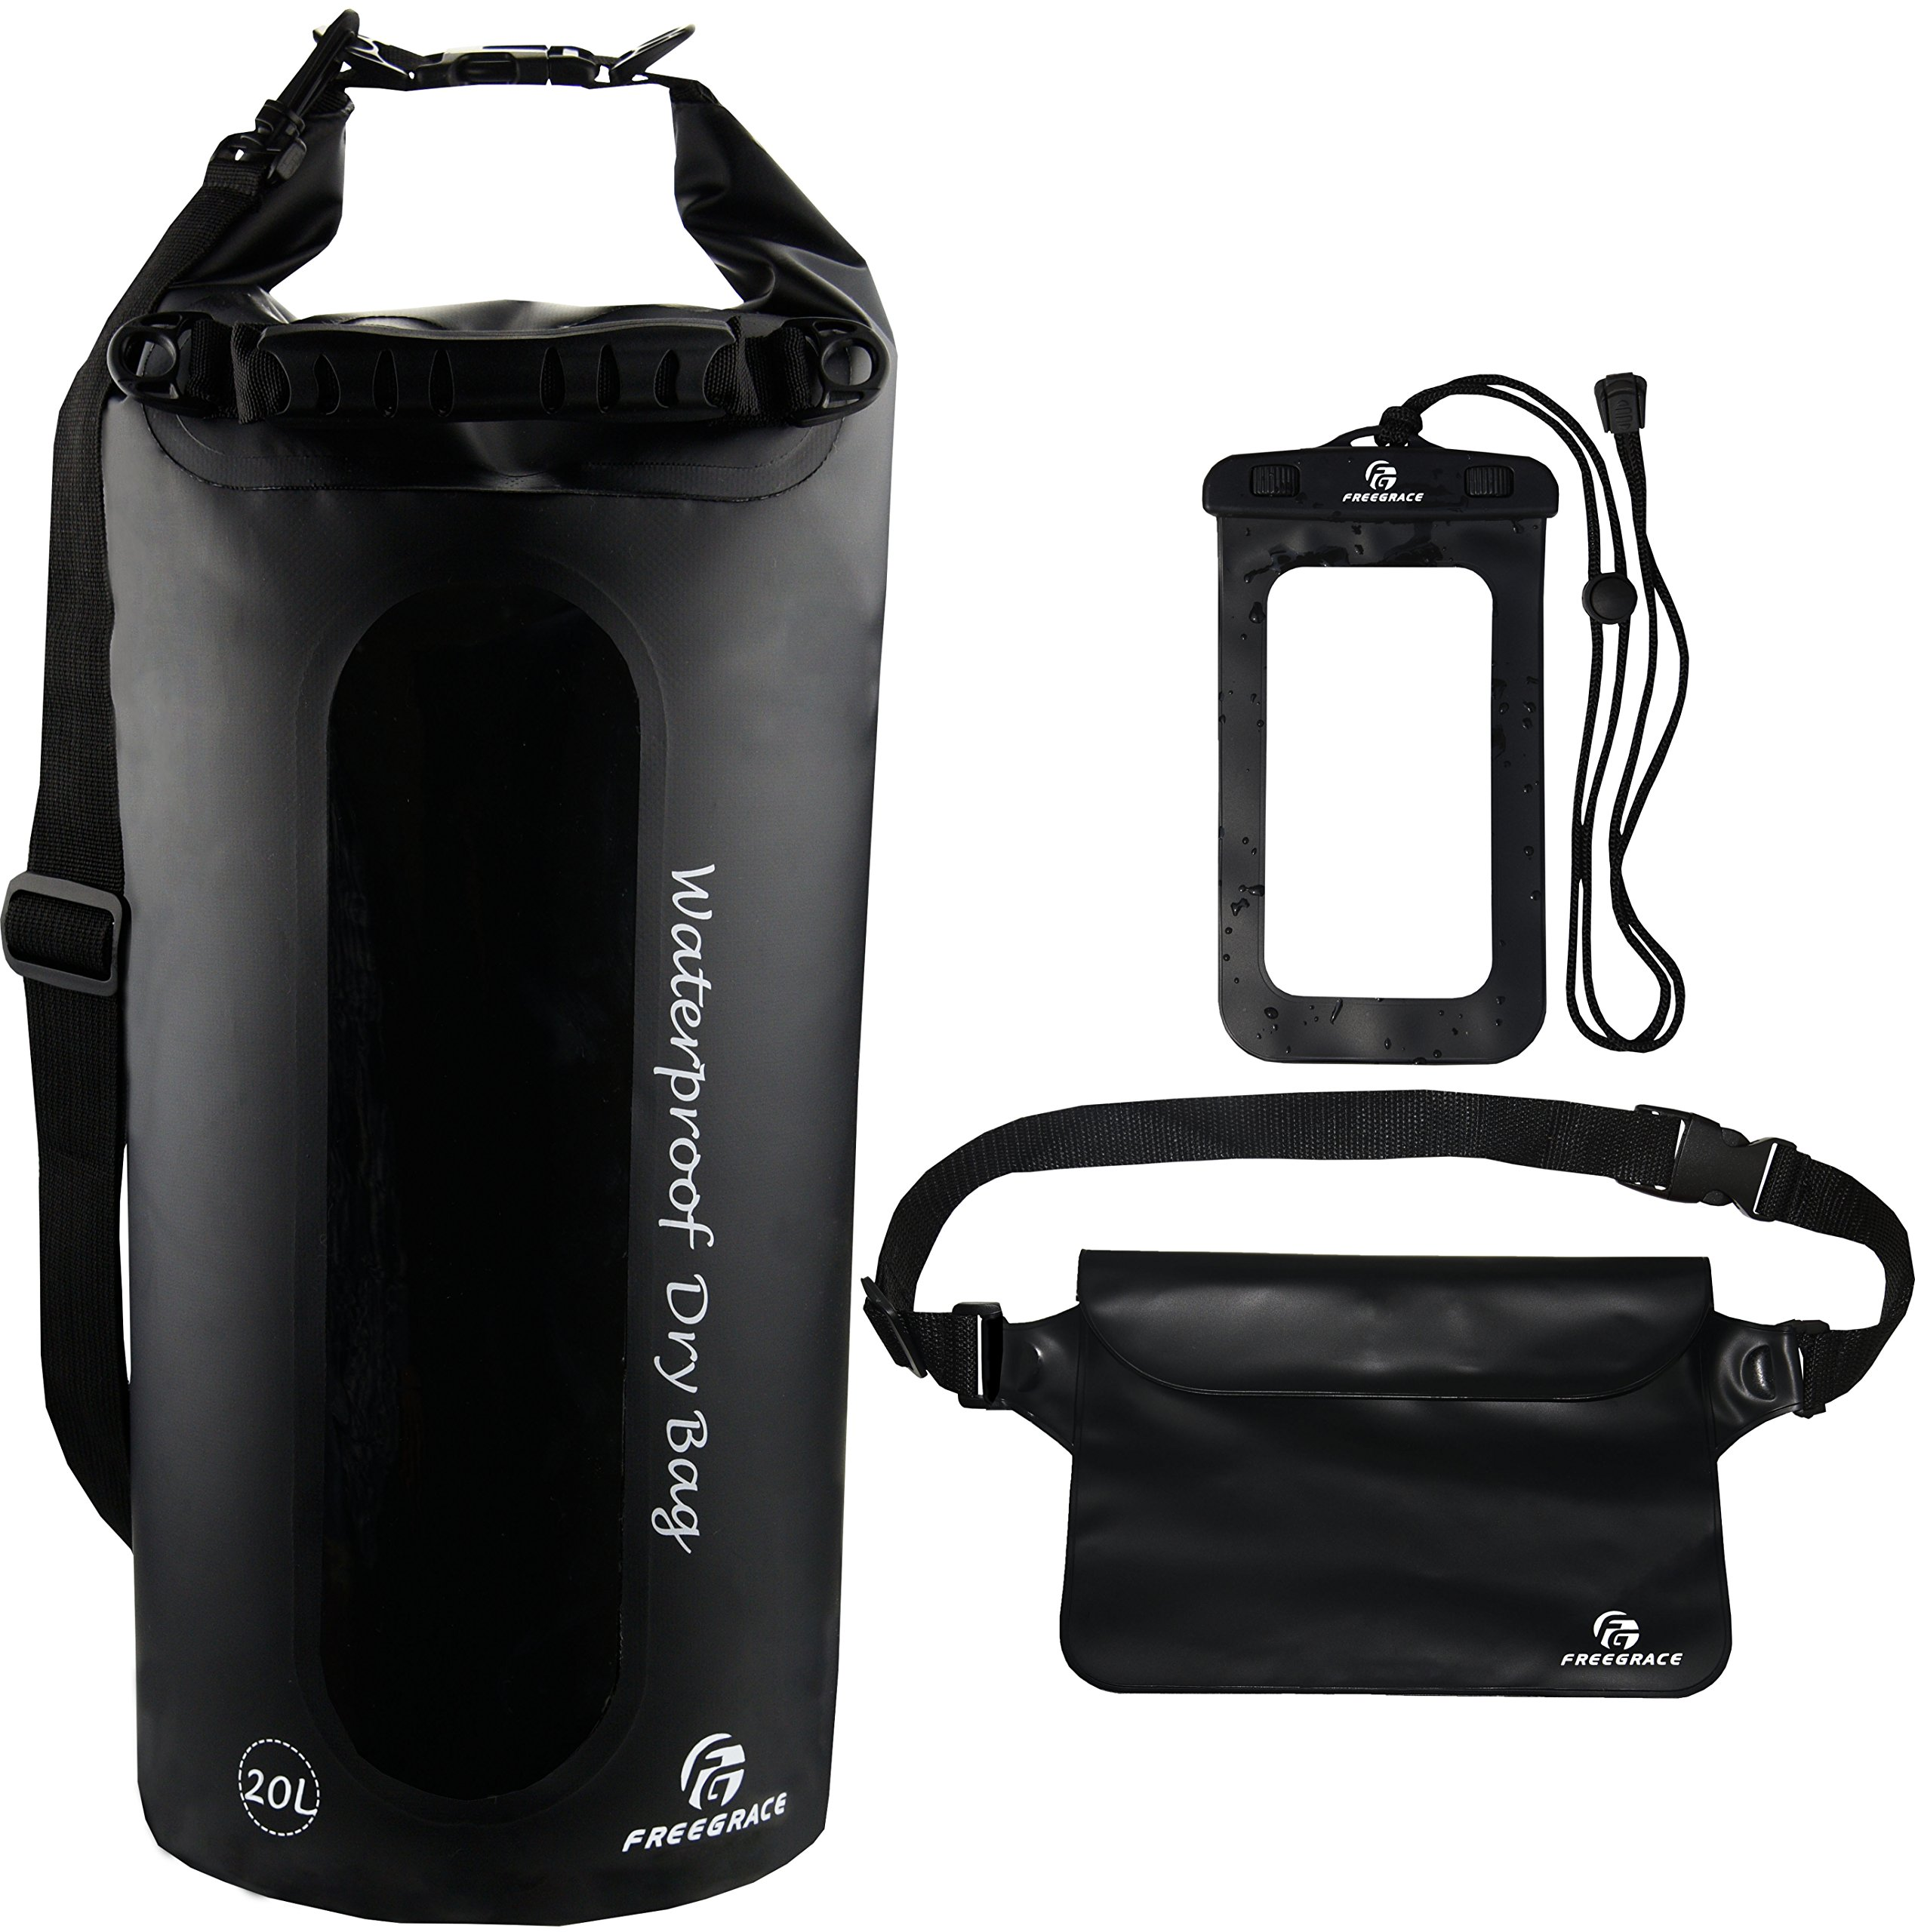 Freegrace Waterproof Dry Bags Set of 3 Dry Bag with 2 Zip Lock Seals & Detachable Shoulder Strap, Waist Pouch & Phone Case - Can Be Submerged Into Water - for Swimming (Black(Window), 20L)